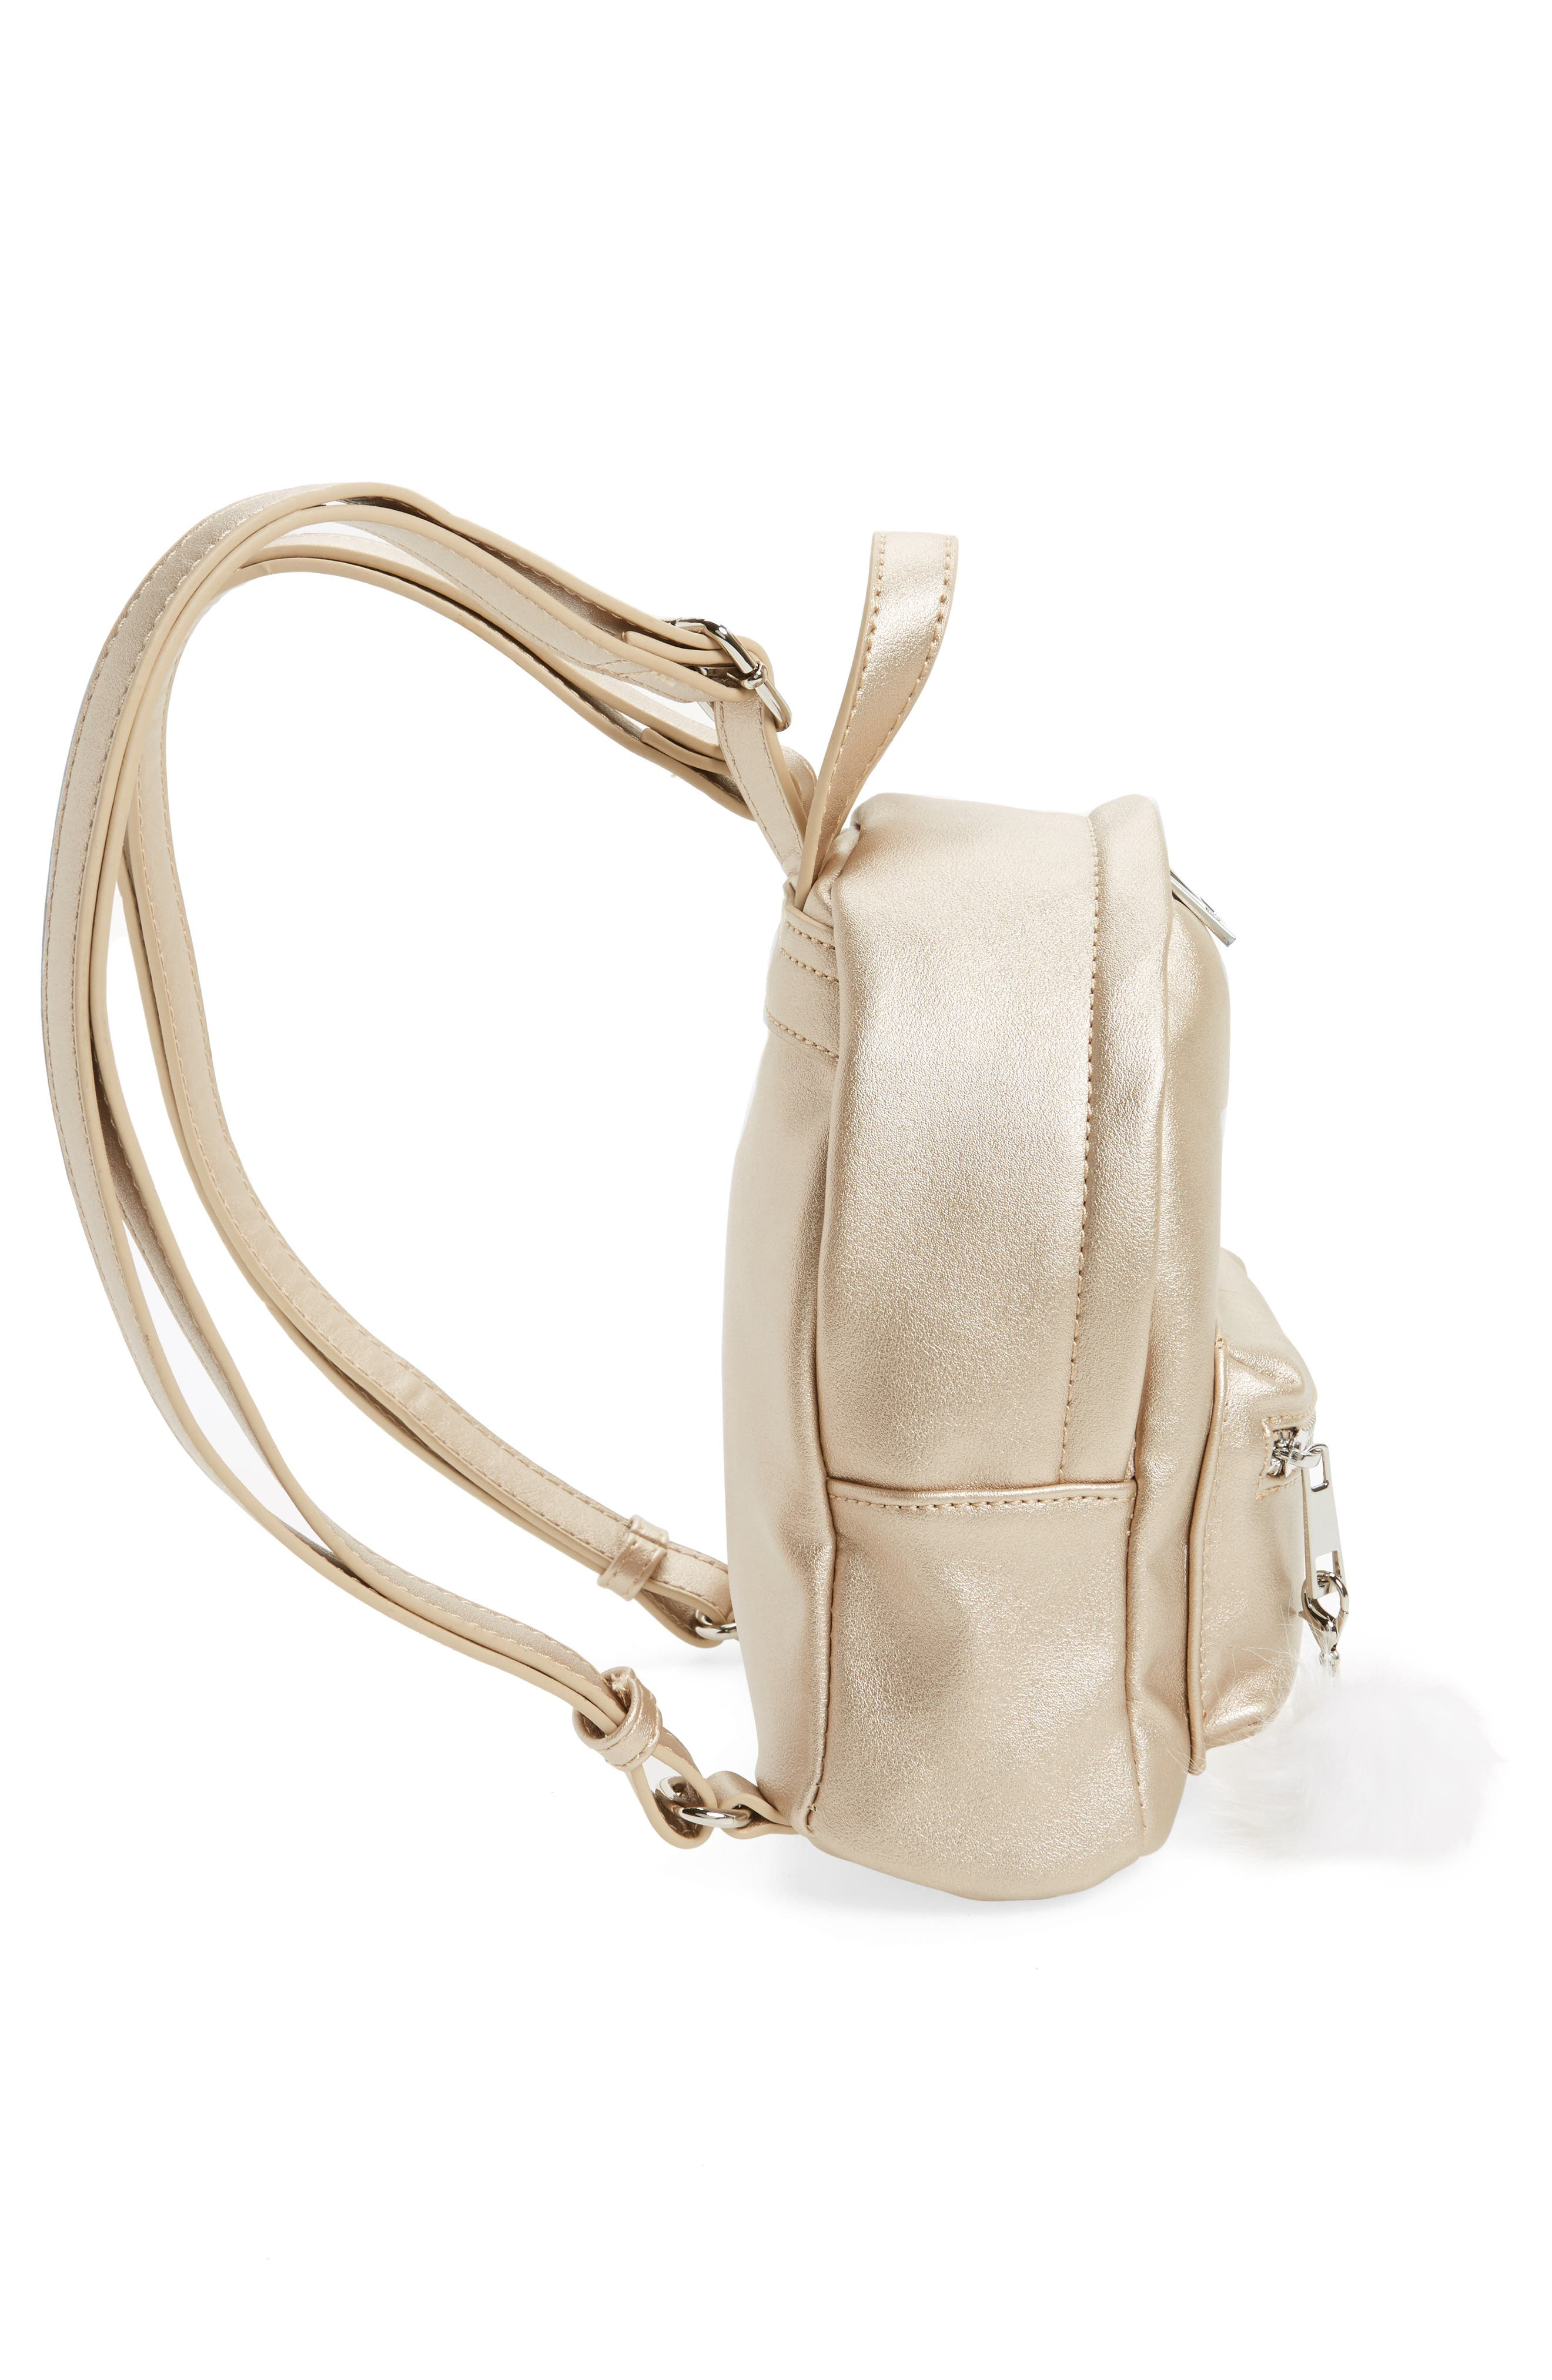 Faux Leather Mini Backpack,                             Alternate thumbnail 7, color,                             Gold/ Silver